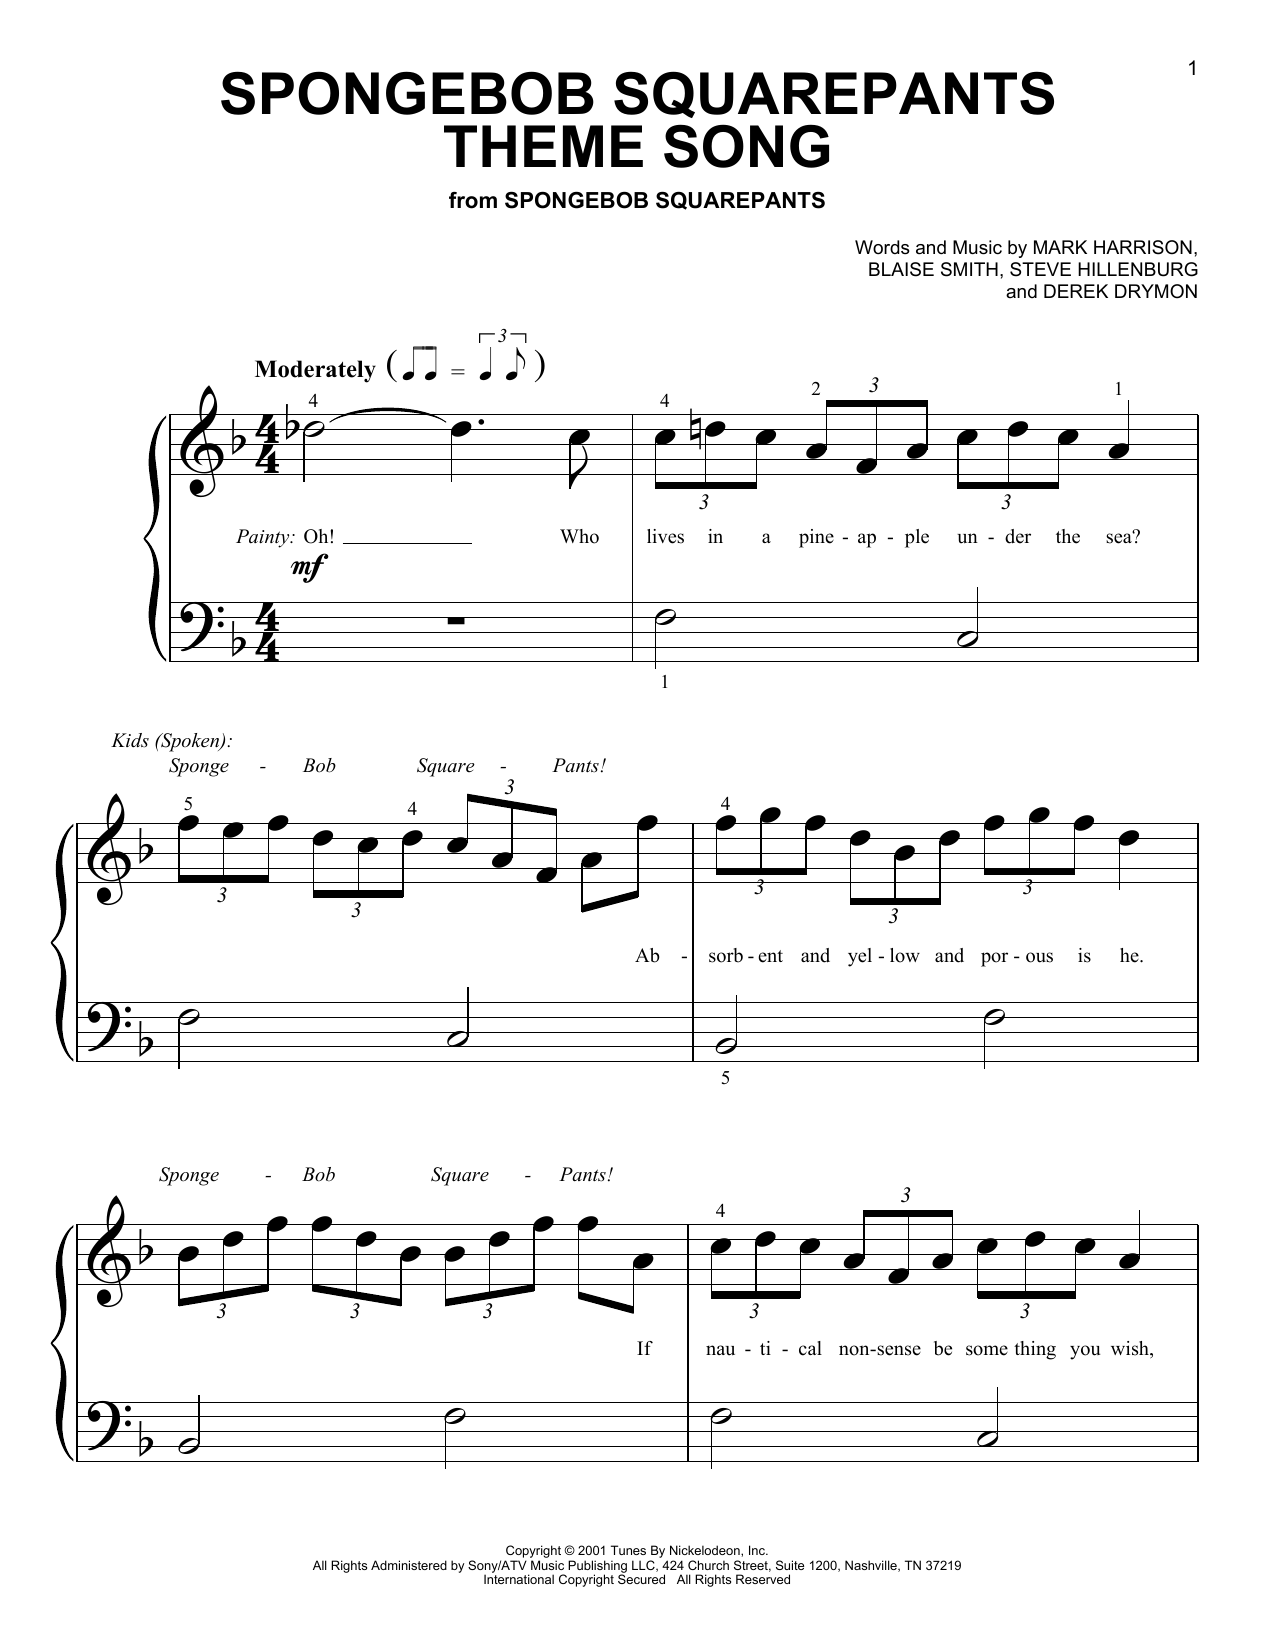 Sheet Music Digital Files To Print - Licensed Blaise Smith